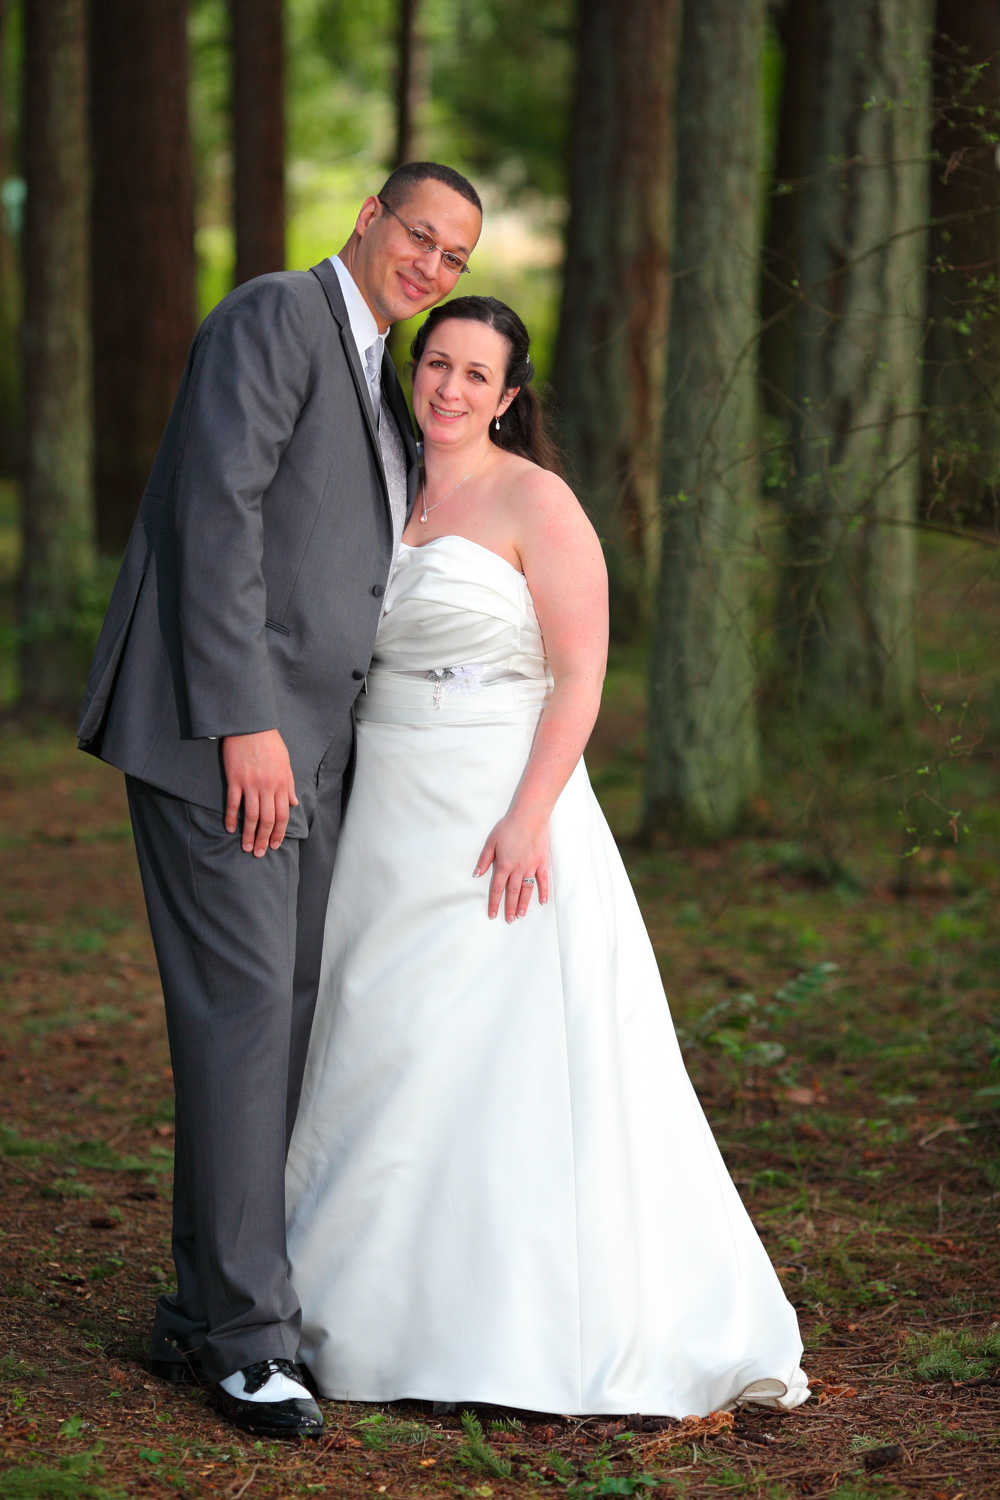 Wedding+Photos+Memorial+State+Park+Kitsap+Washington22.jpg